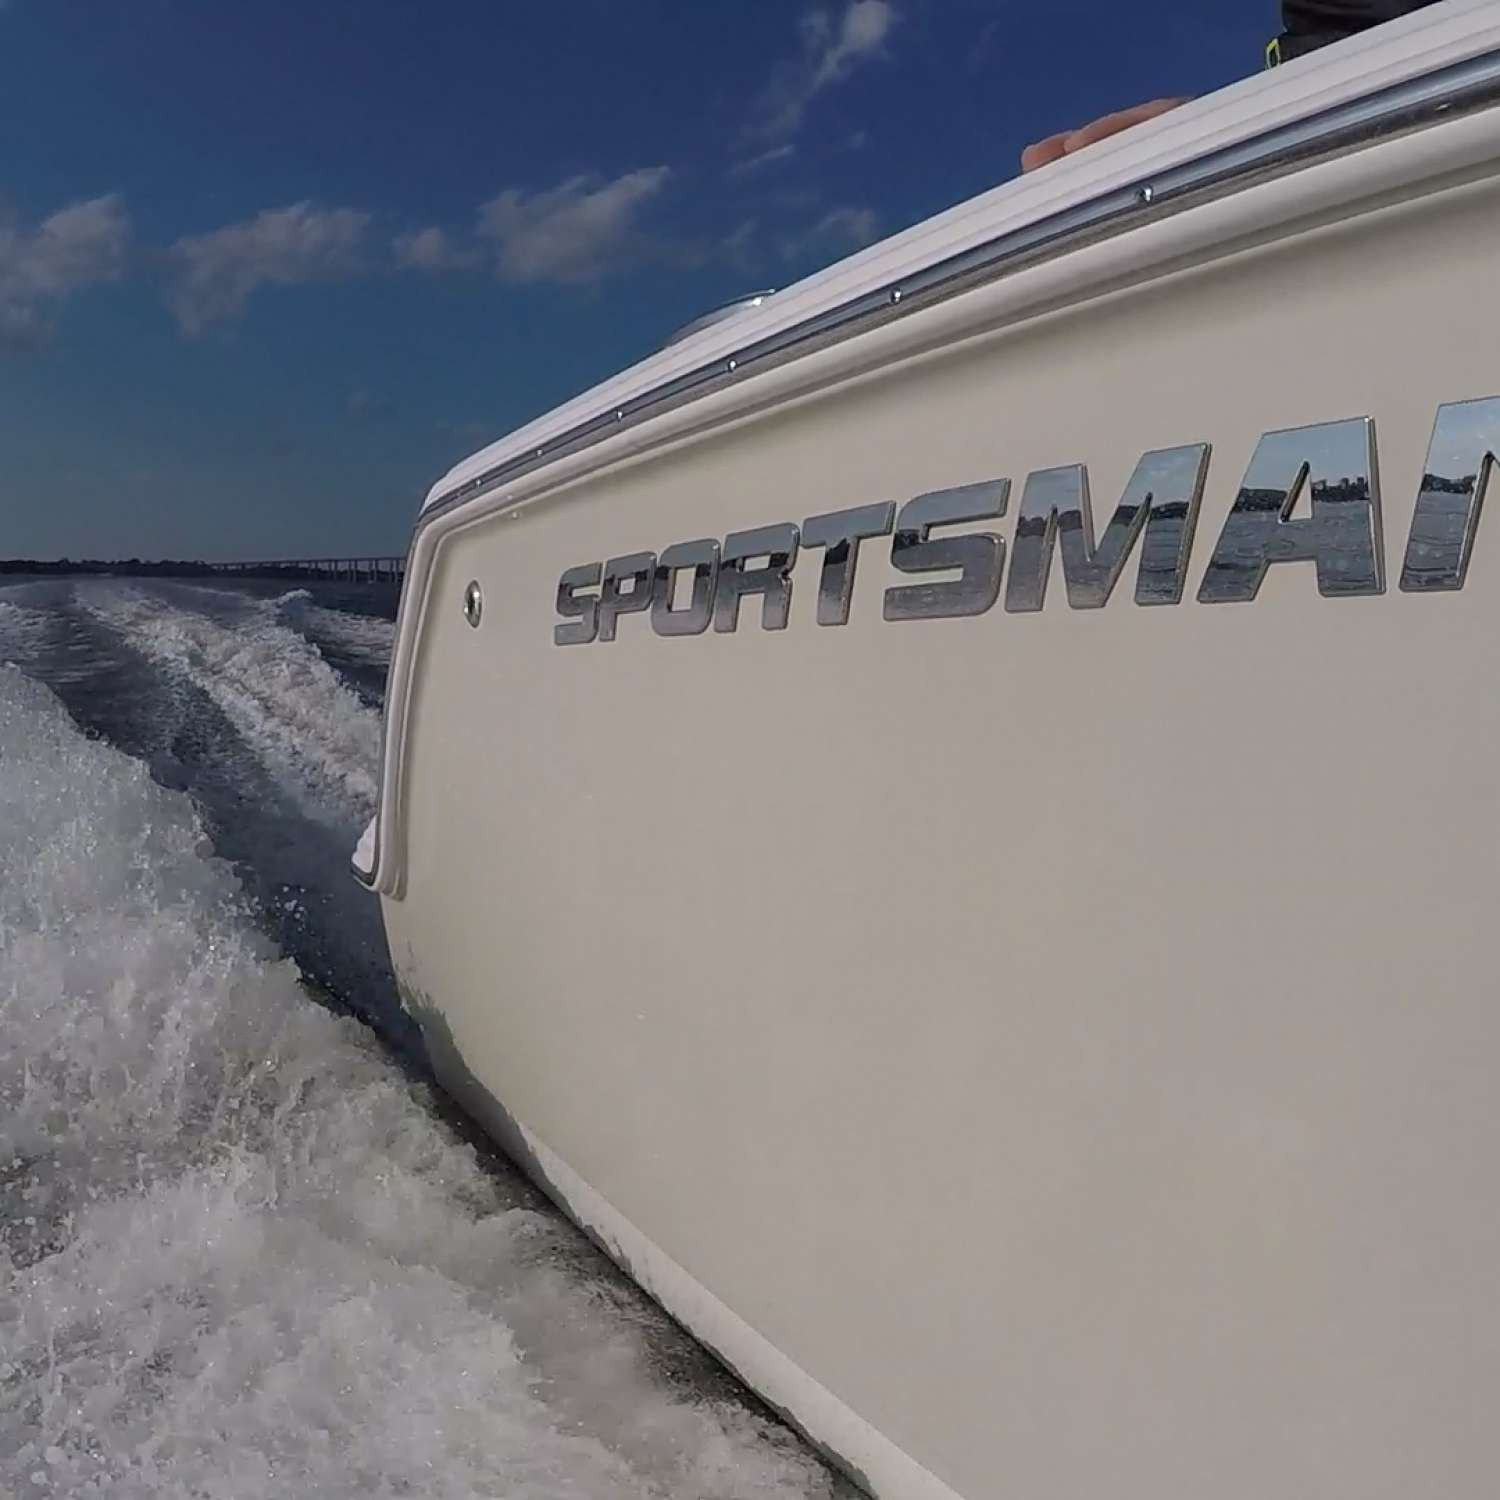 Title: Labor Day Cruising In Sportsman - On board their Sportsman Heritage 231 Center Console - Location: Charleston, South Carolina. Participating in the Photo Contest #SportsmanSeptember2017